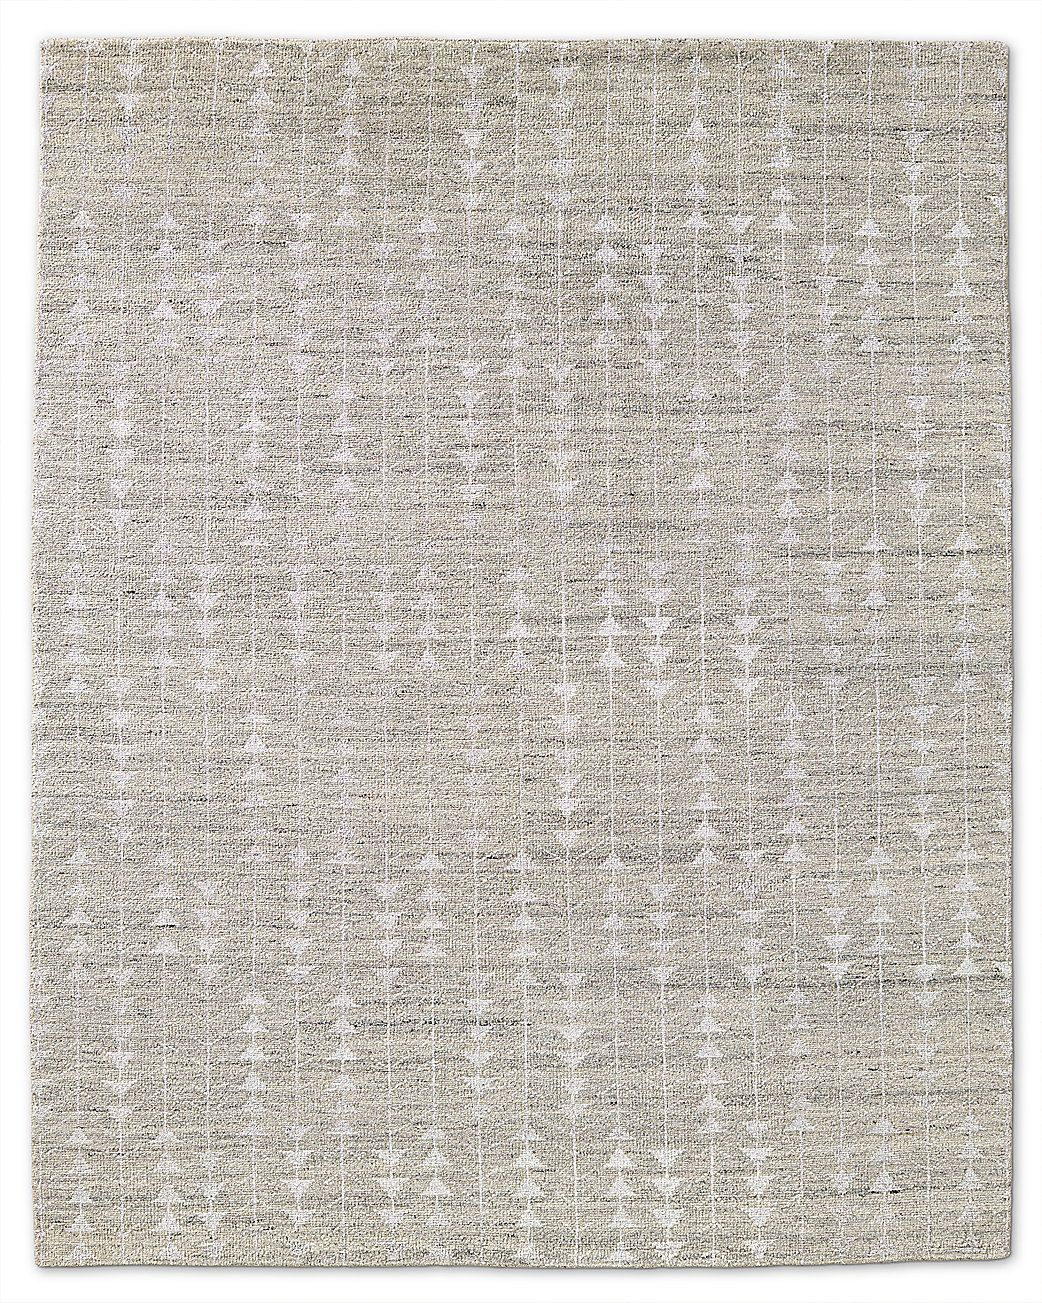 Rug with a subtle pattern from restoration hardware look for a less expensive version